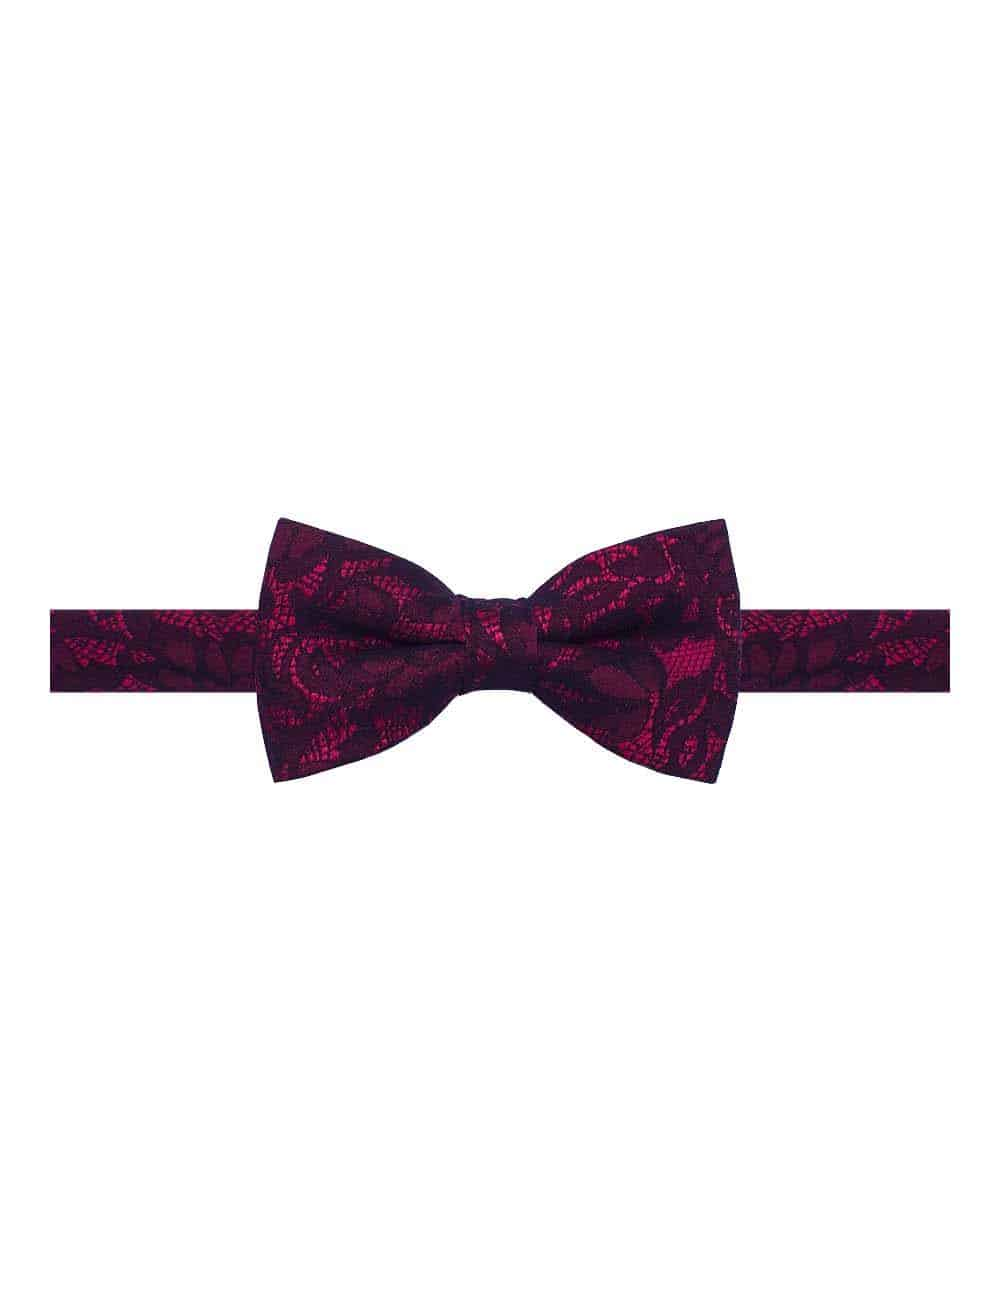 Red with Black Lace Woven Bowtie WBT11.8